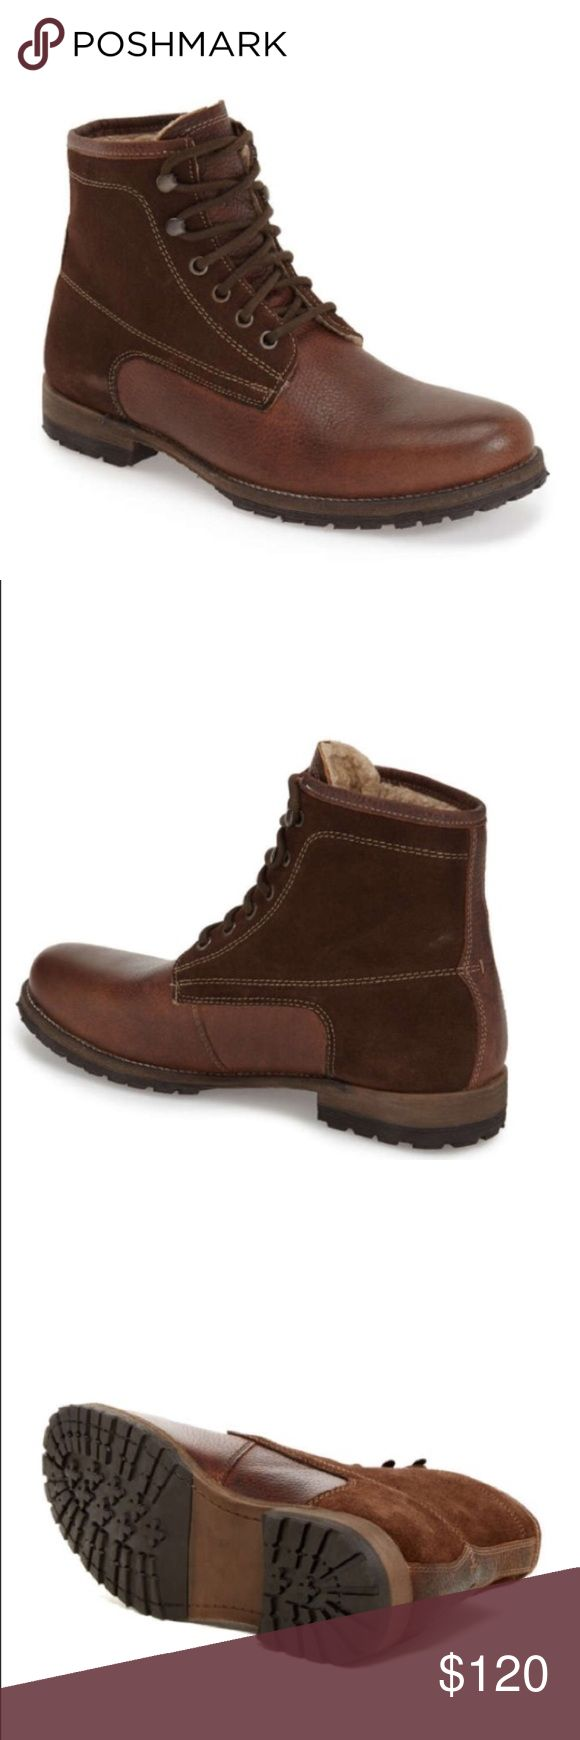 Steve Madden Men's Leather Boots